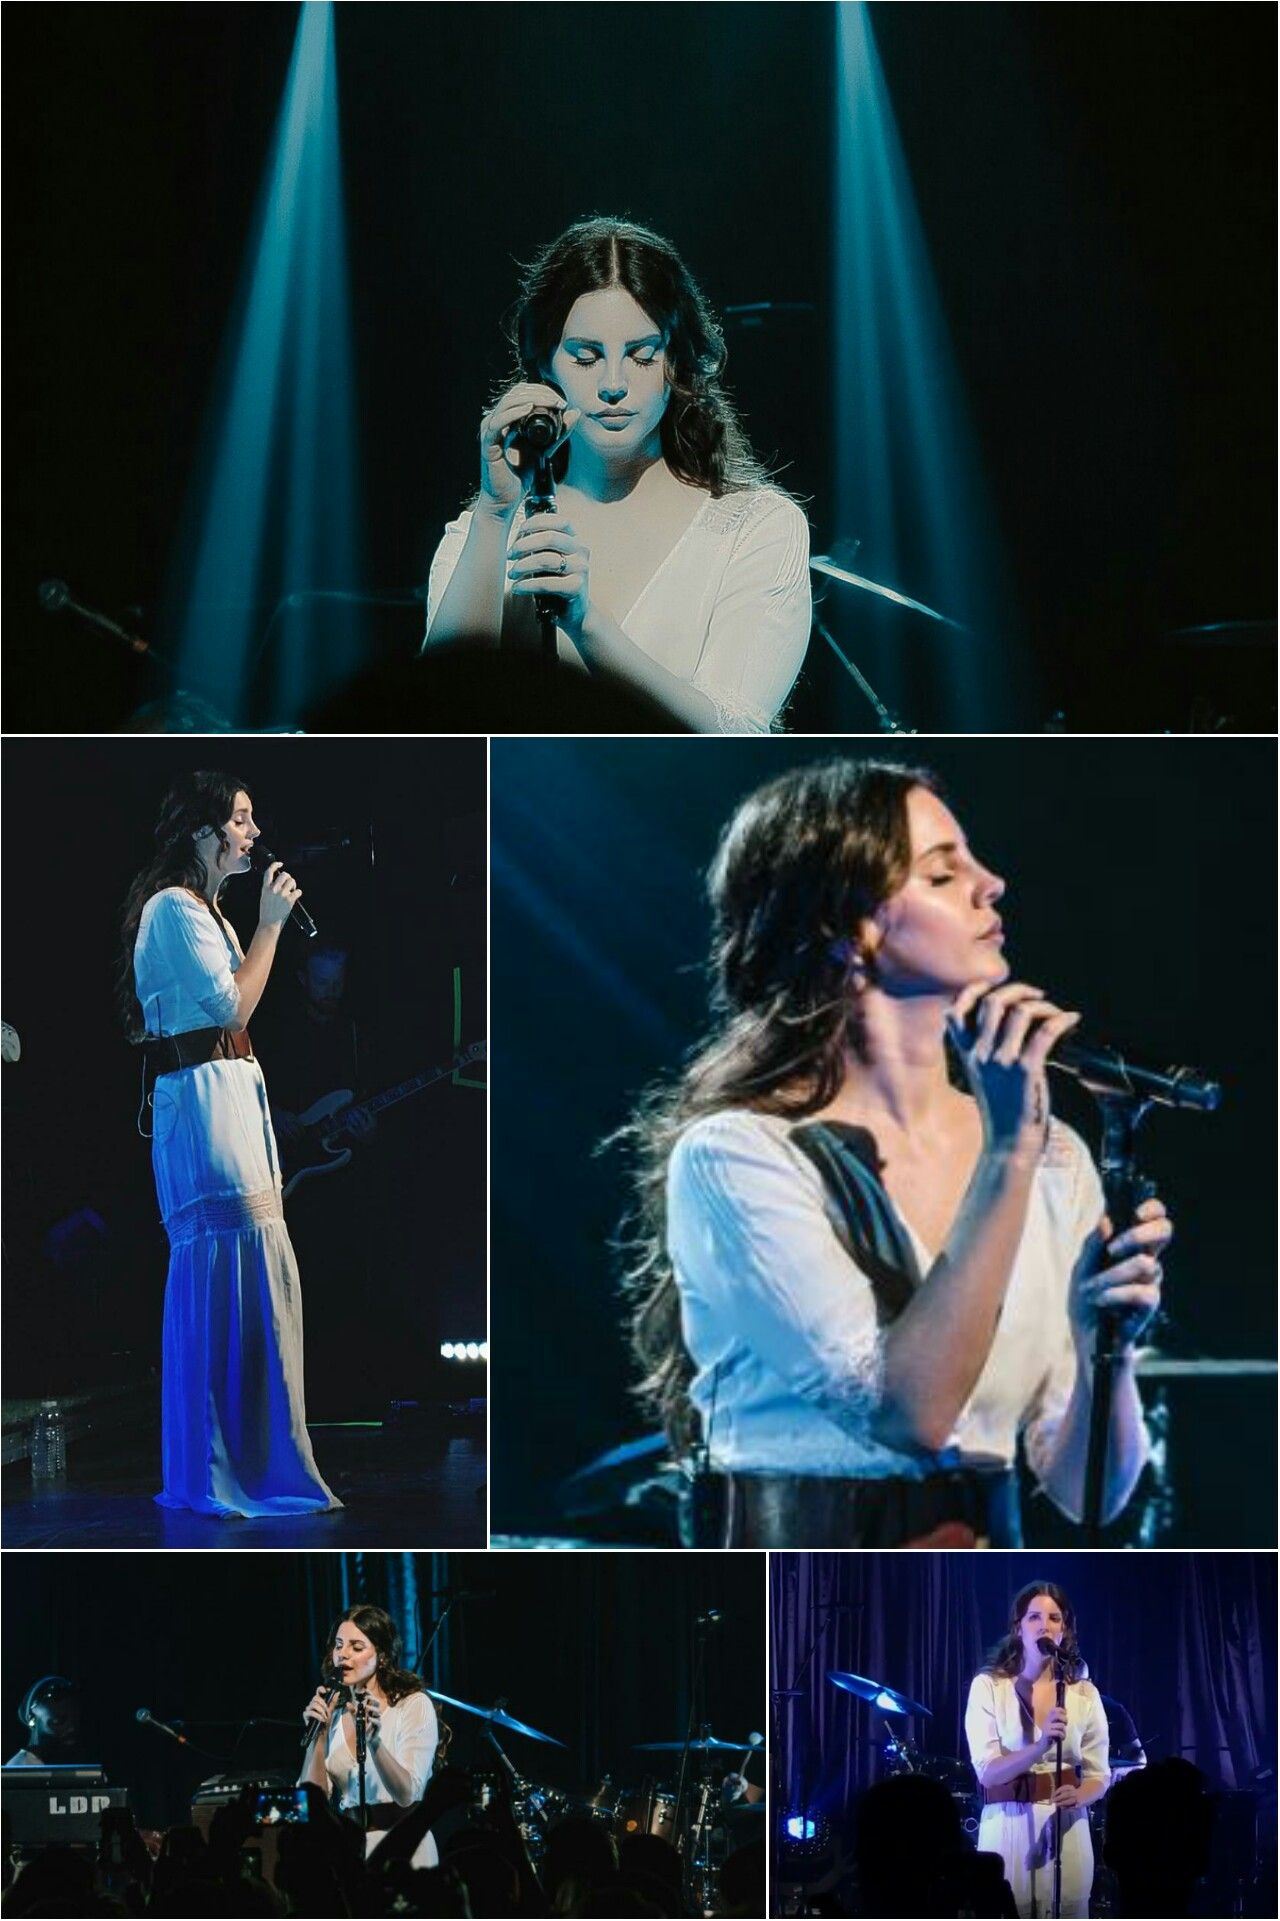 Lana Del Rey performing at SXSW in Austin, TX LDR (With